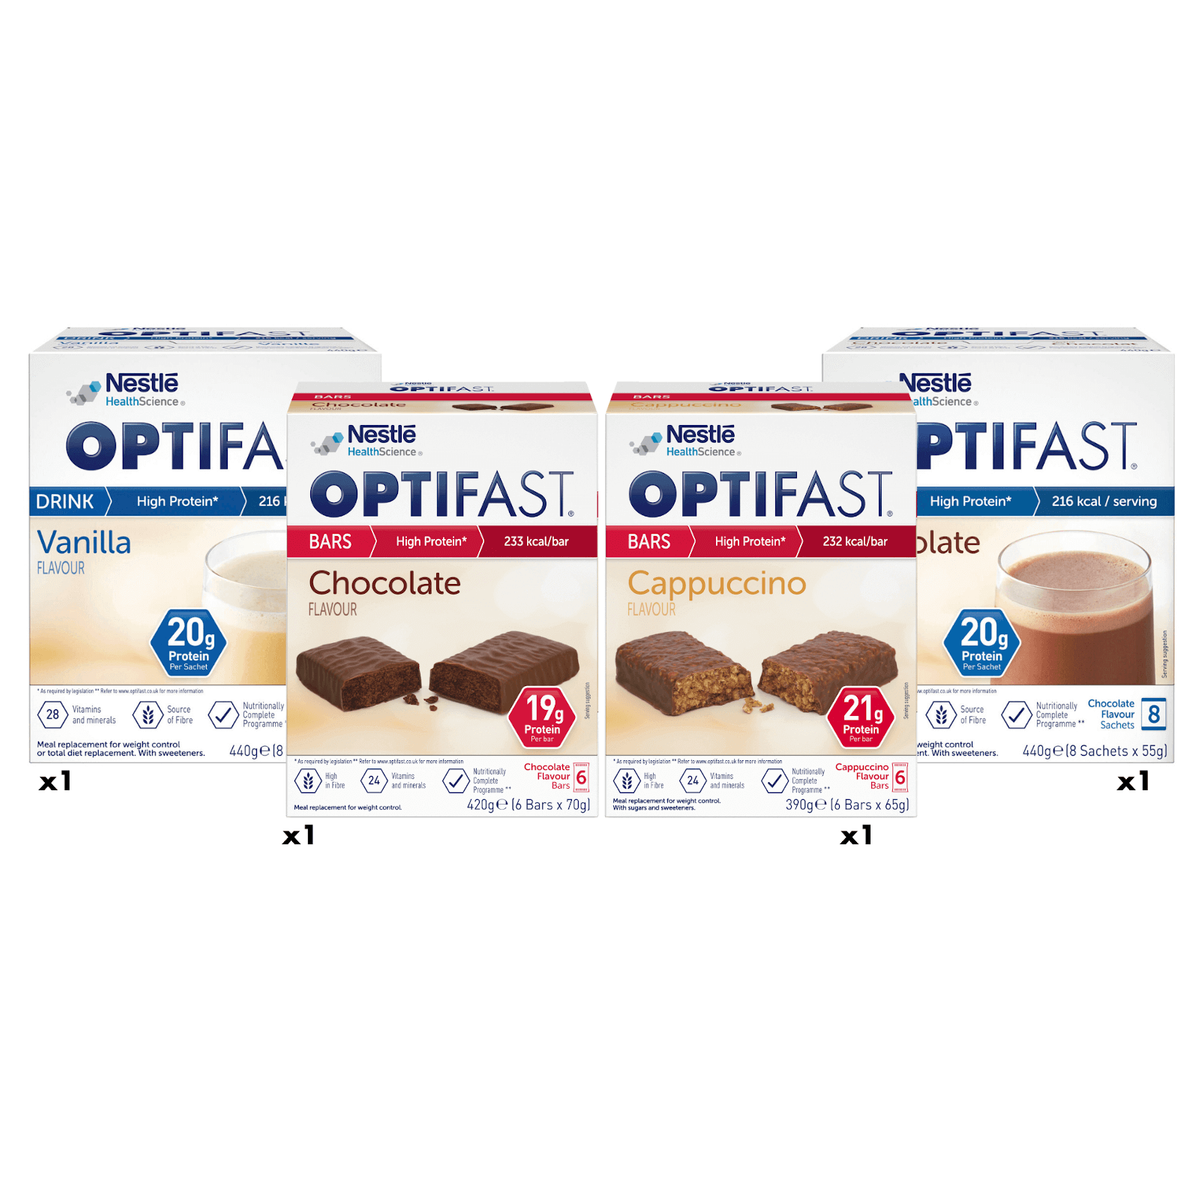 Intermittent fasting plan with OPTIFAST vanilla and chocolate flavoured shakes, chocolate and cappuccino flavoured bars